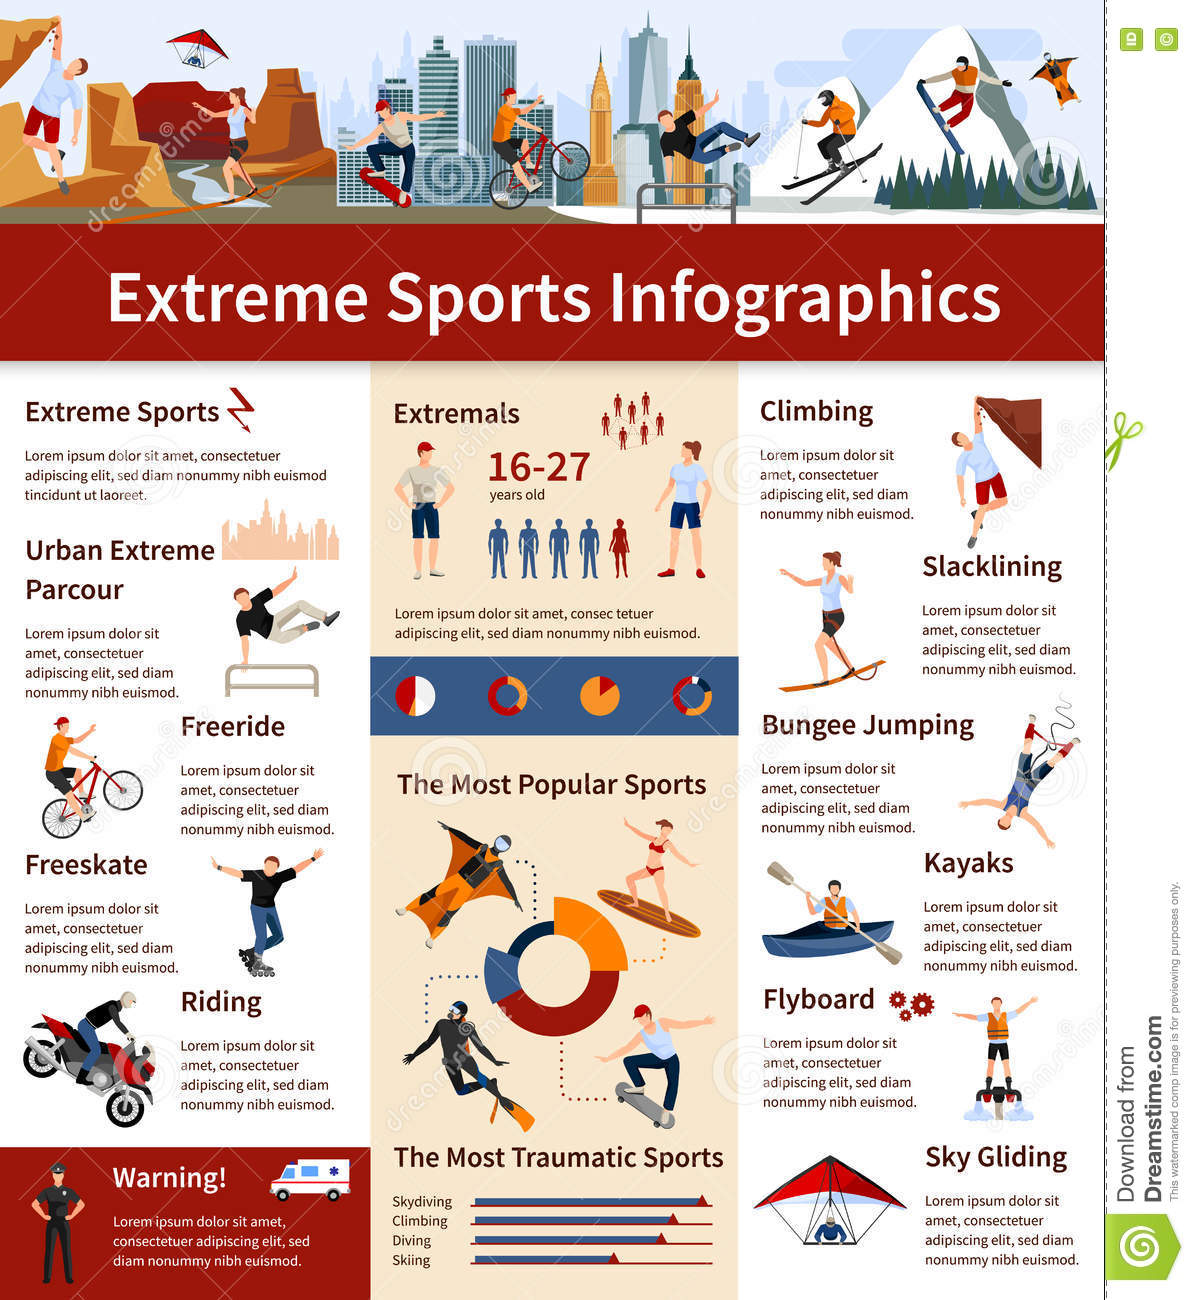 Extreme sports infographics cartoon vector cartoondealer for Sports infographics templates